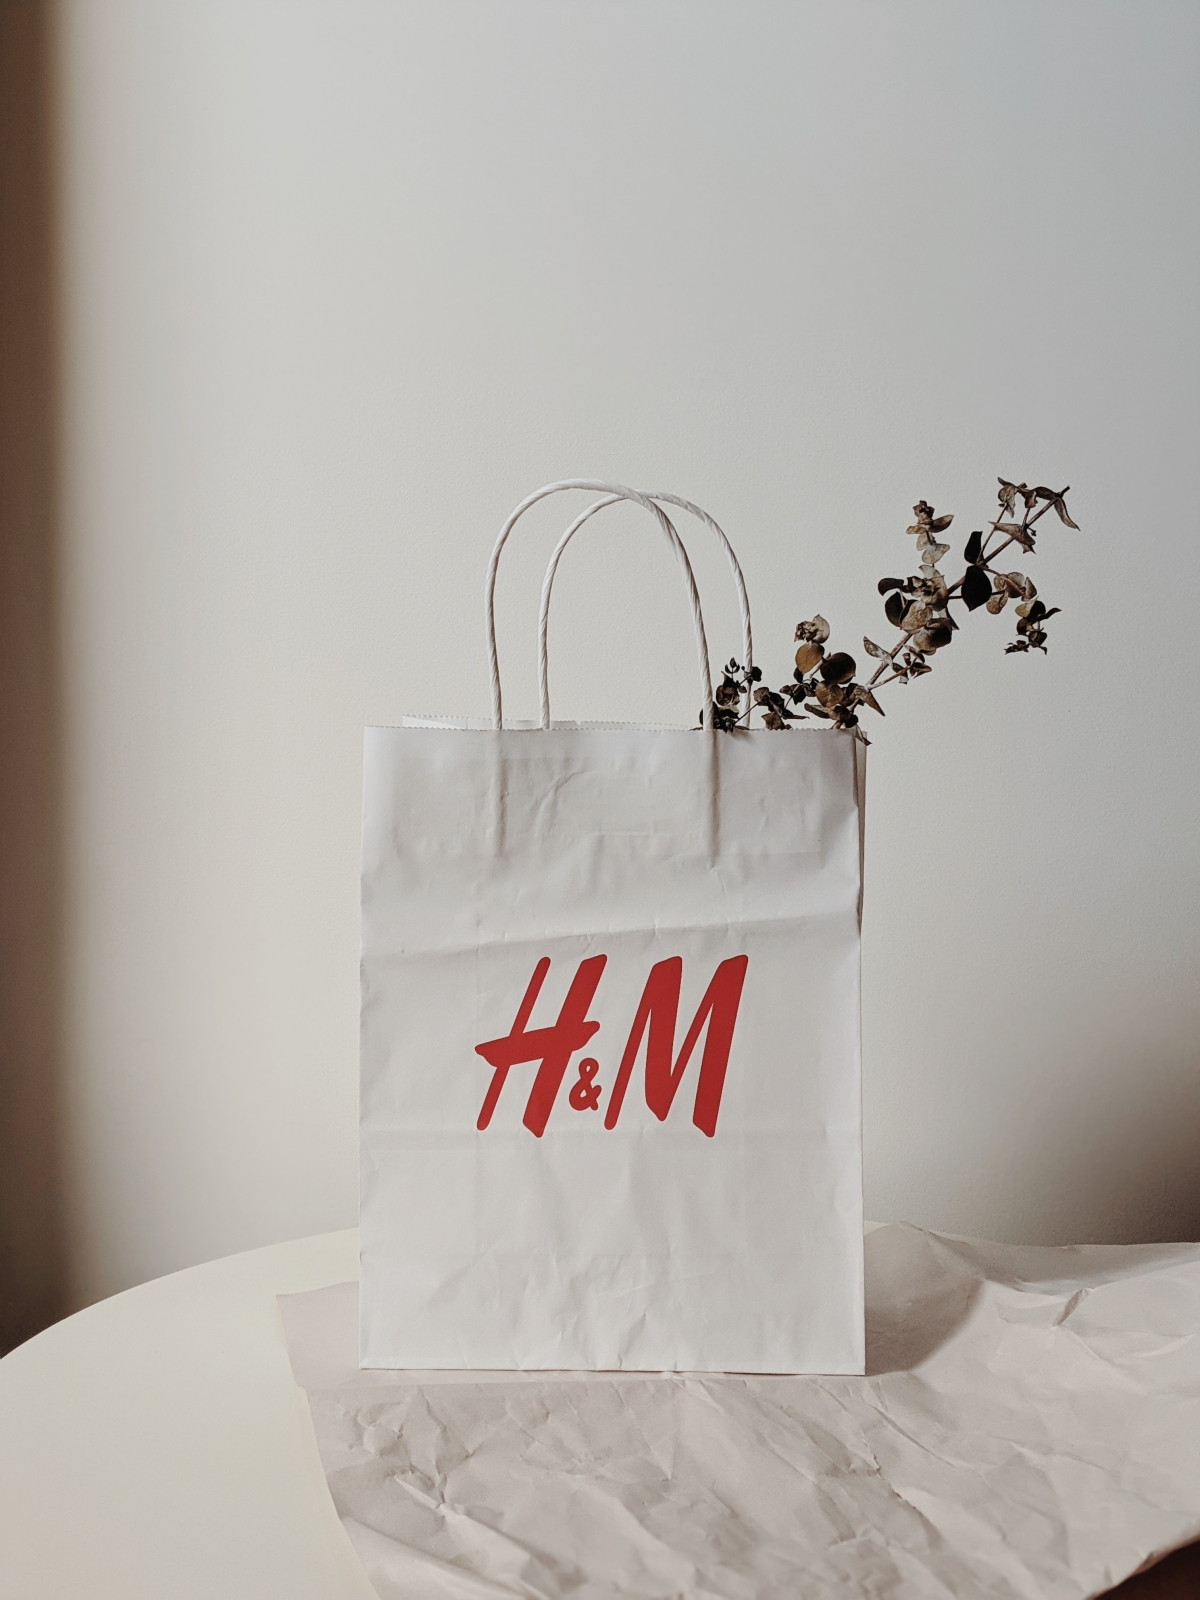 Virus resurgence hits H&M sales, cuts promising recovery